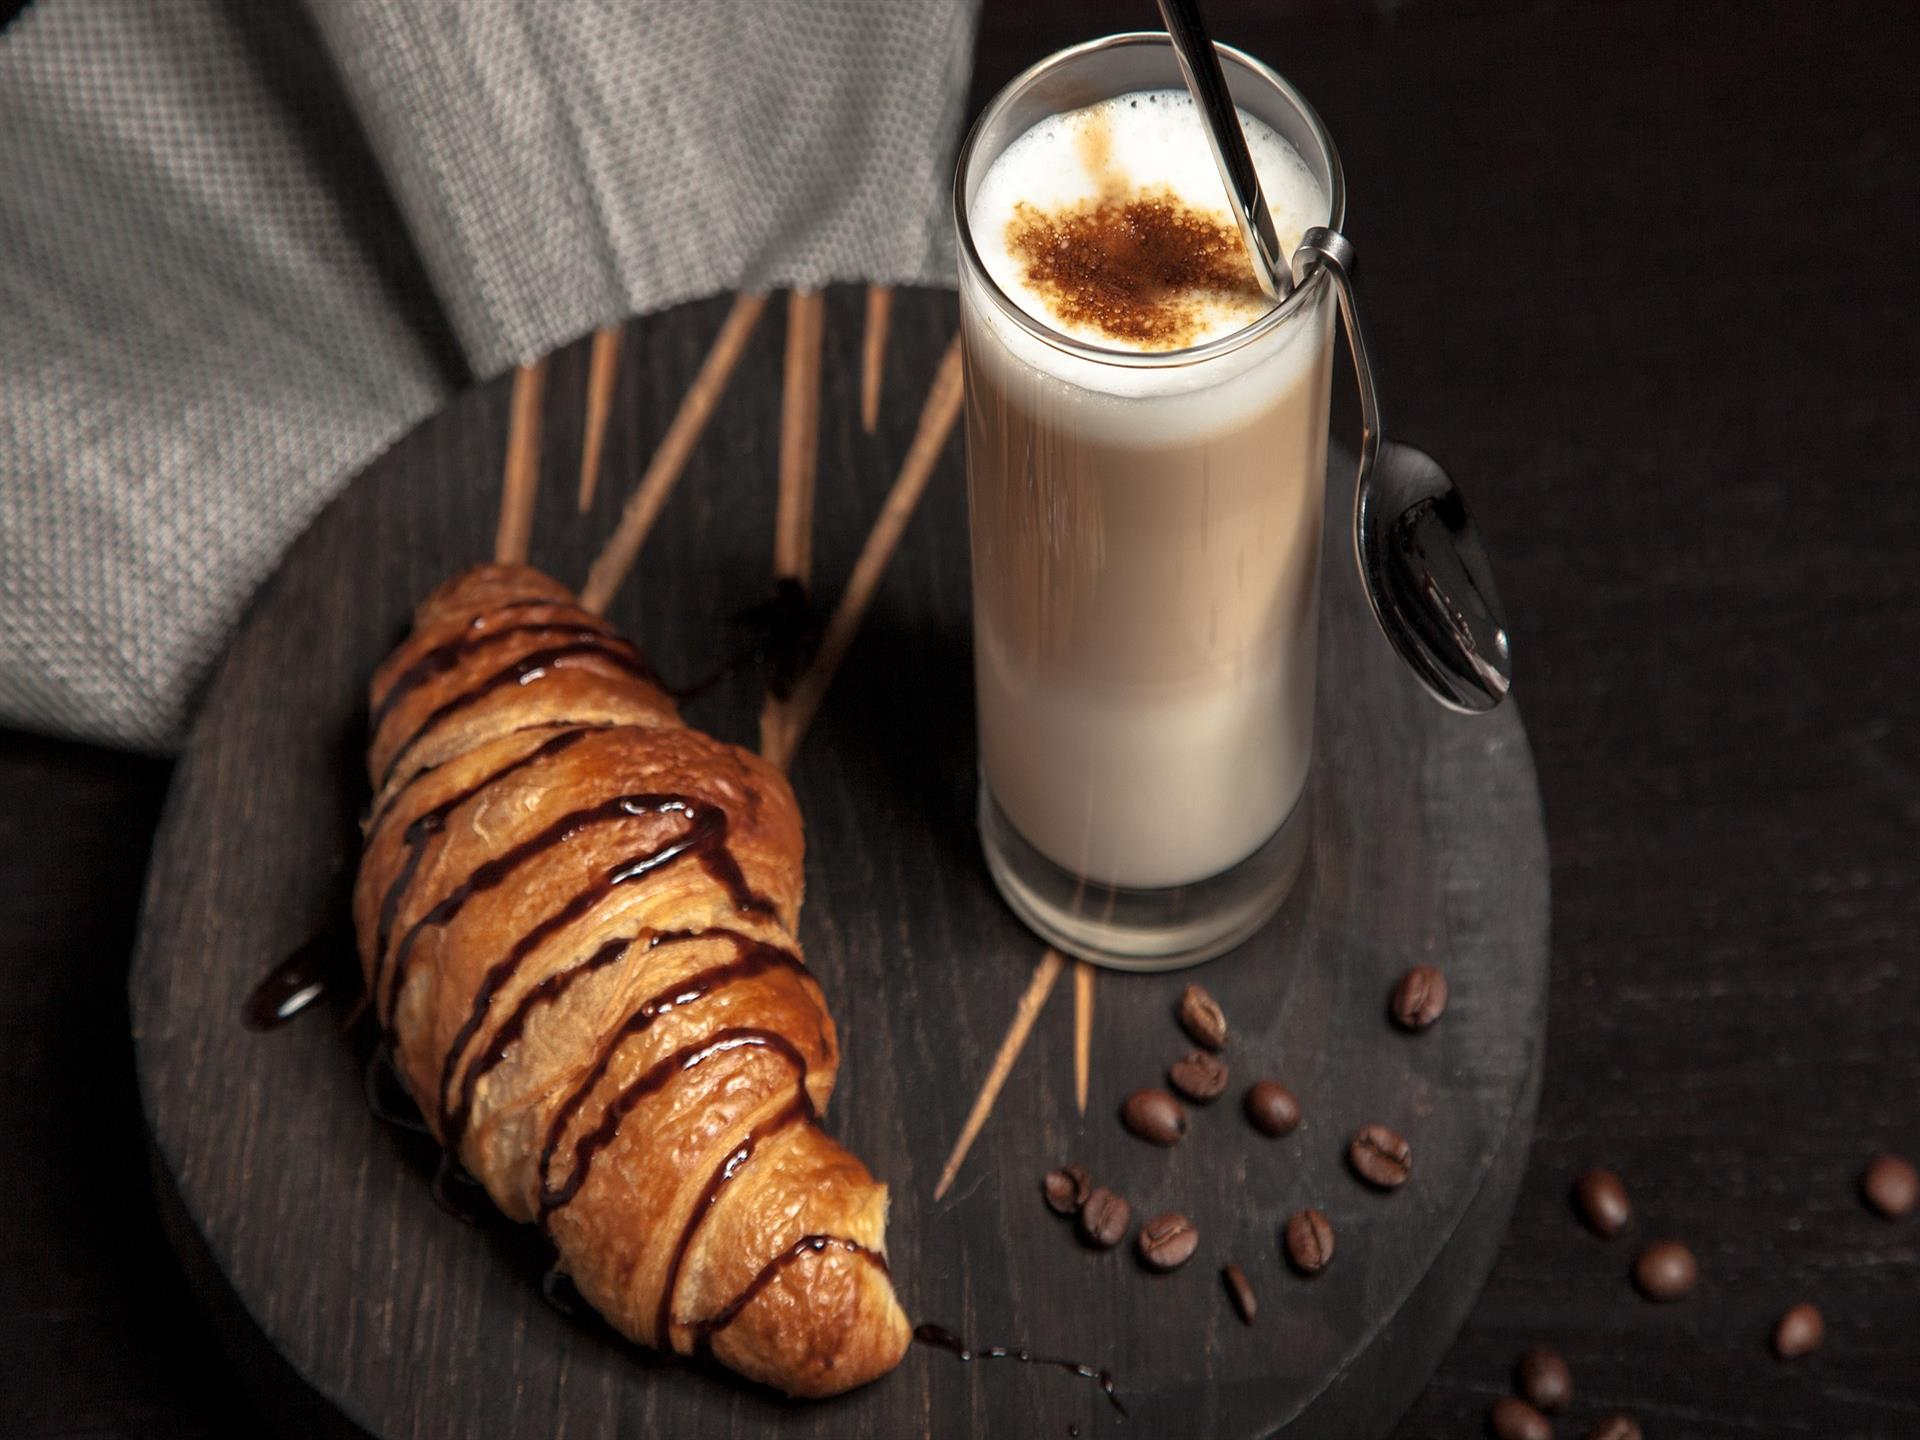 coffee and a chocolate croissant